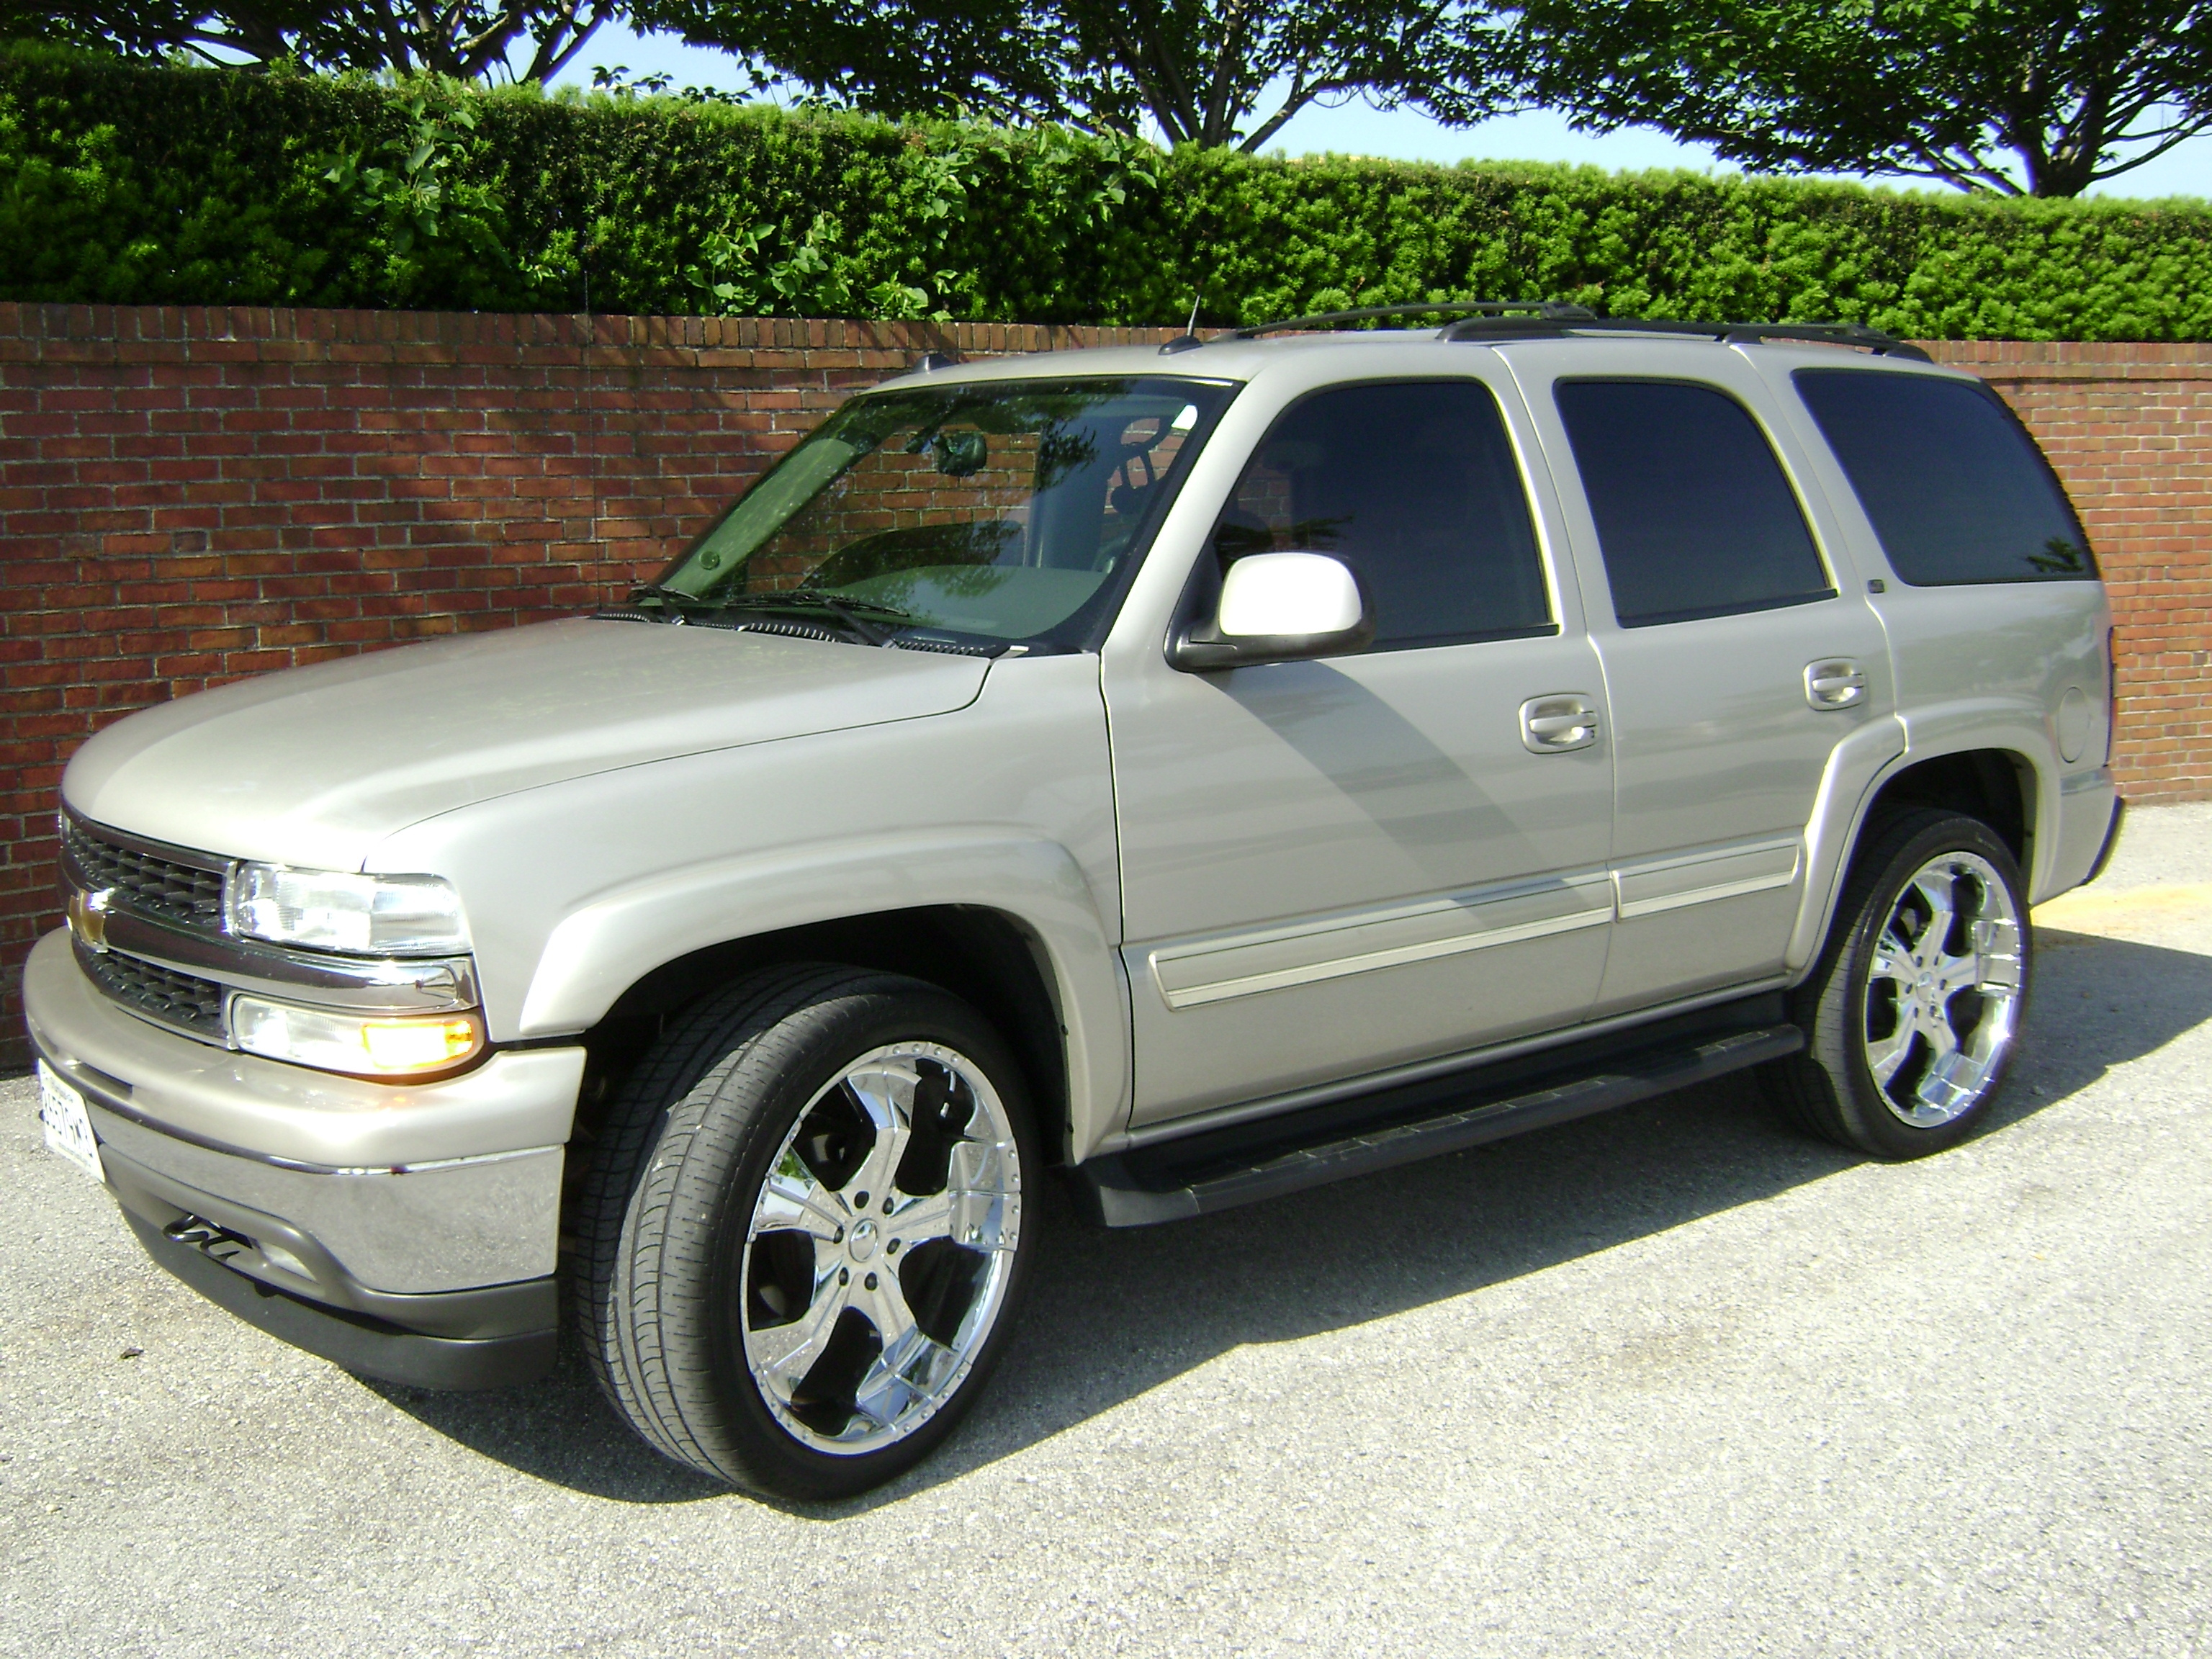 05tahoe 2005 Chevrolet Tahoe Specs, Photos, Modification ...